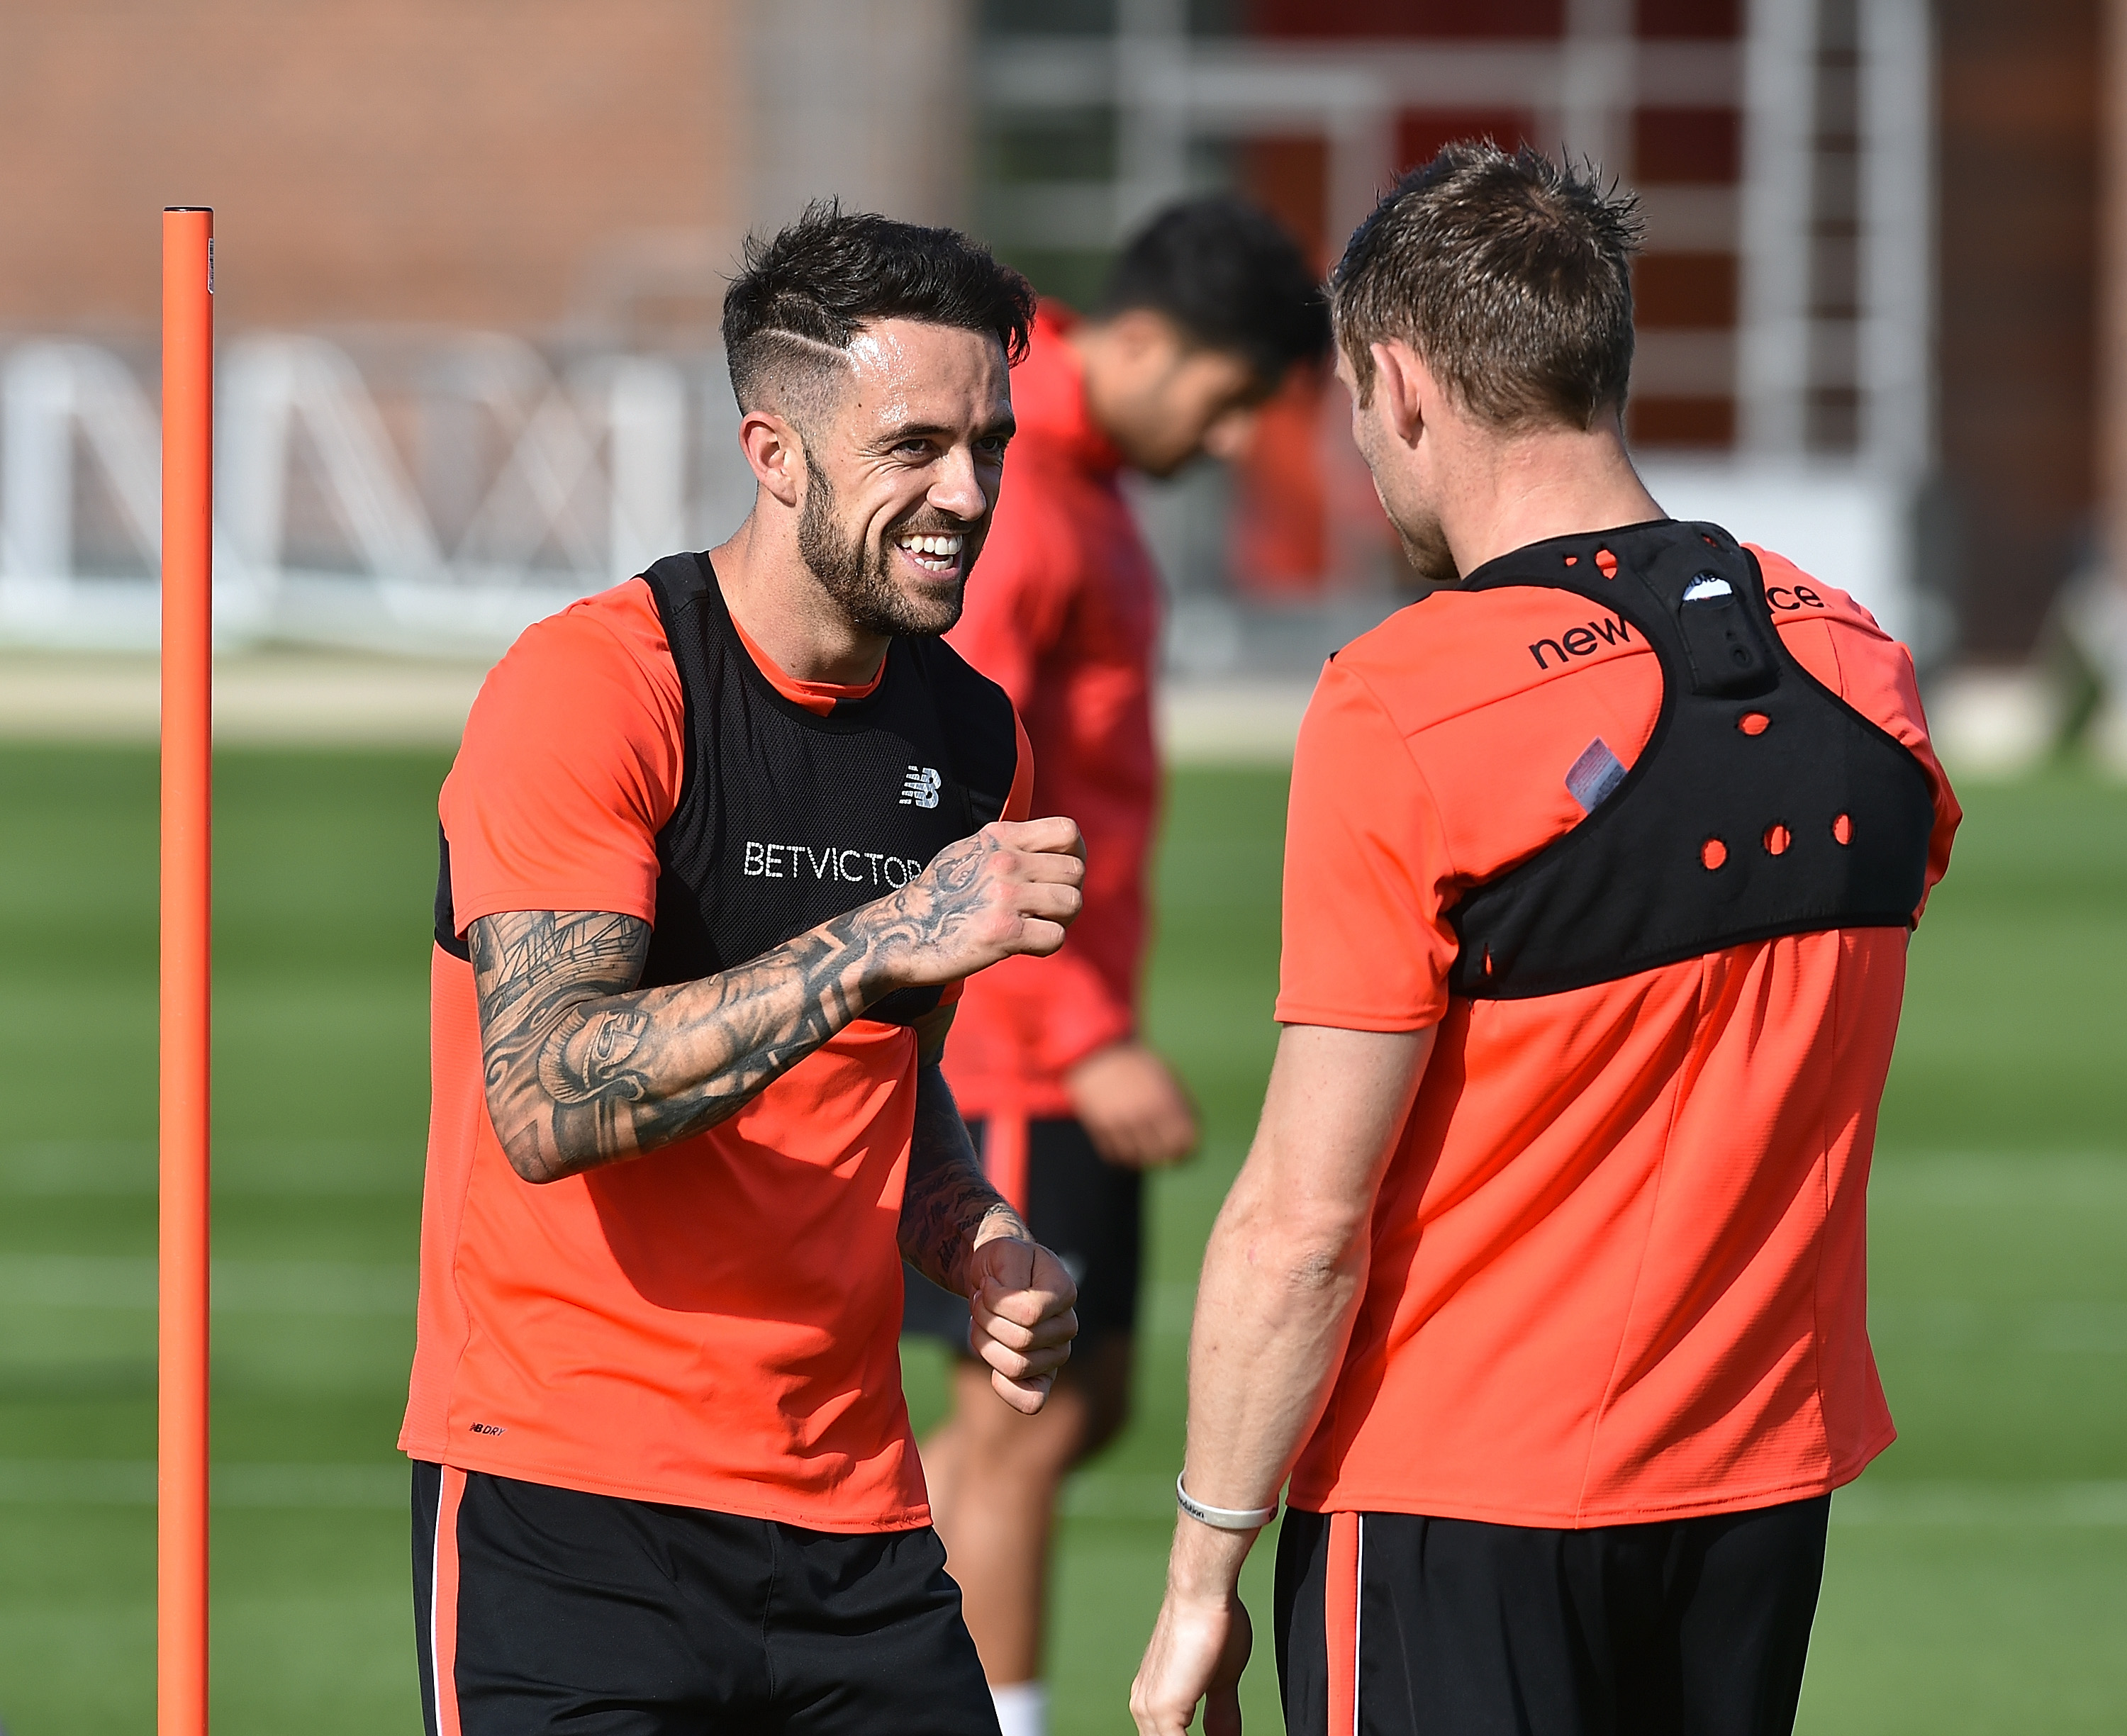 Danny Ings scores a hat-trick for Liverpool Under-23s and Mamadou Sakho is delighted to be involved